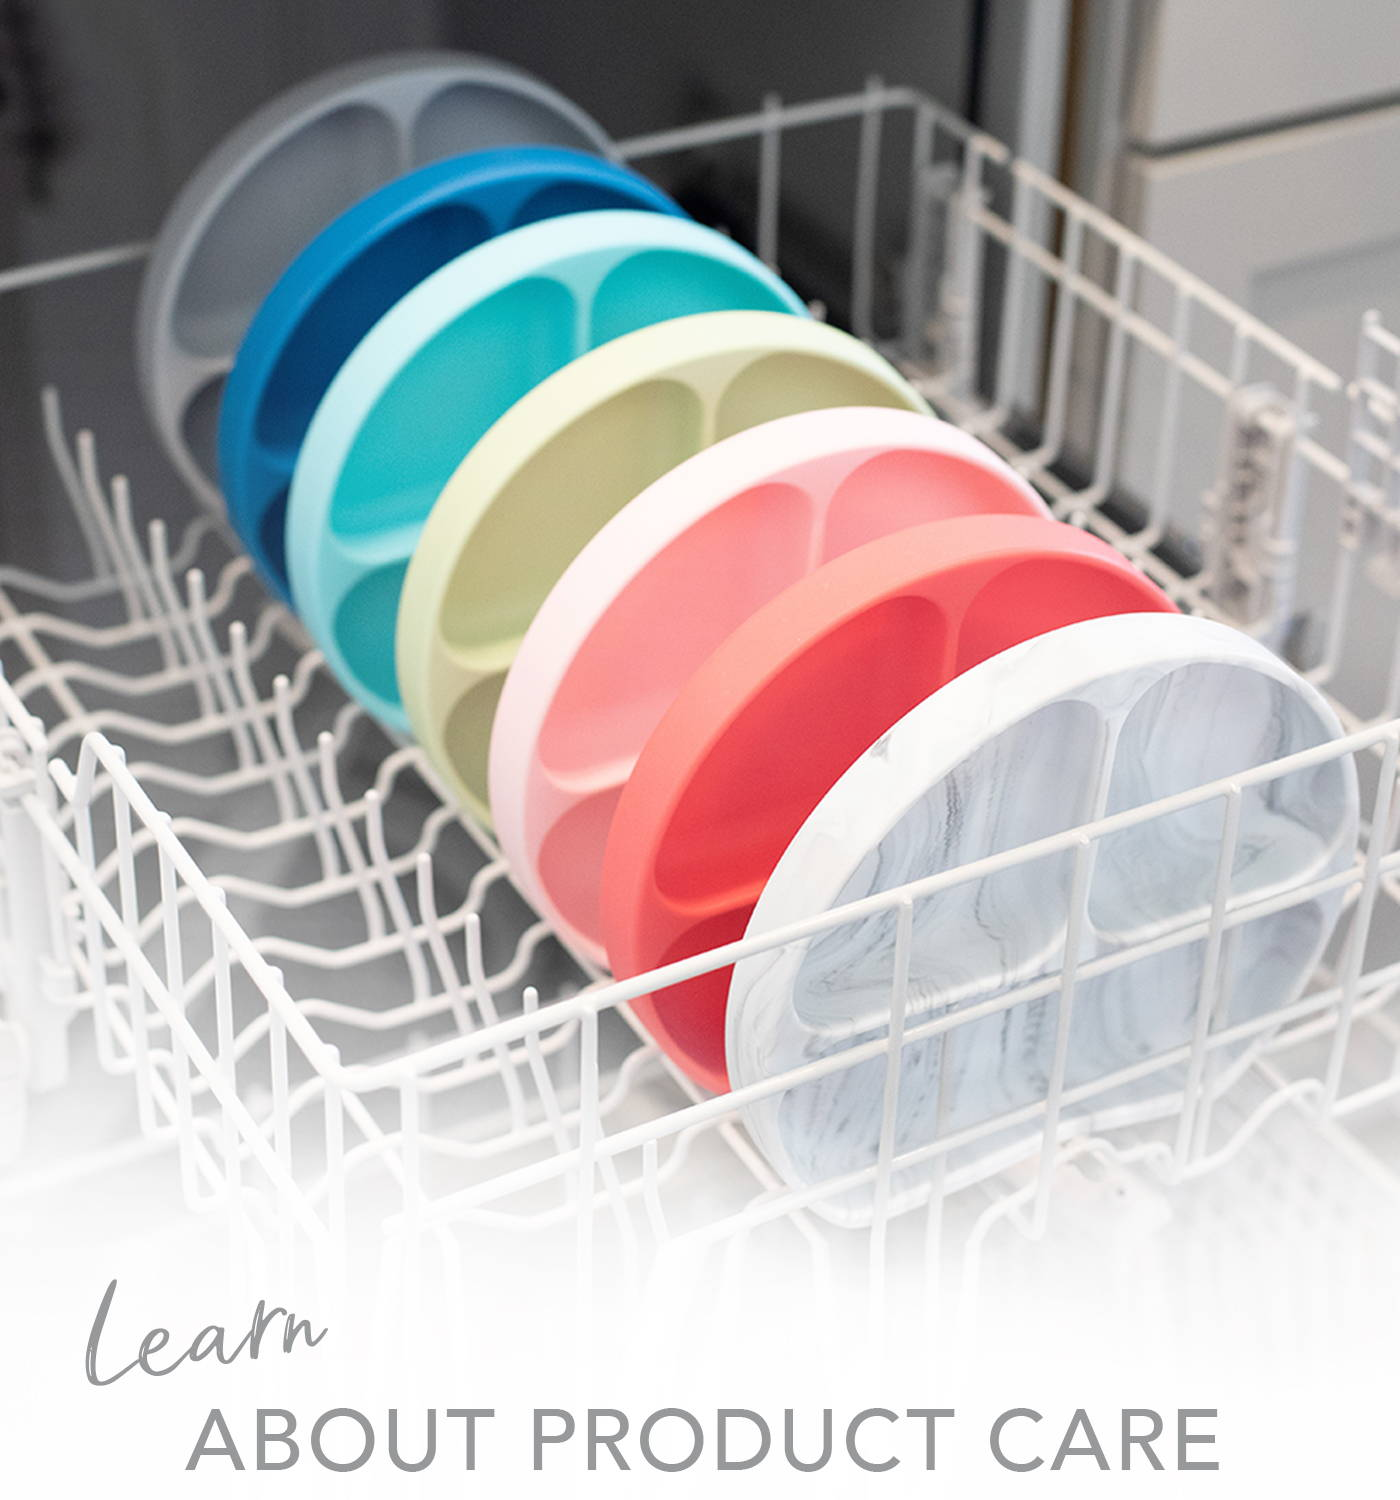 learn about product care